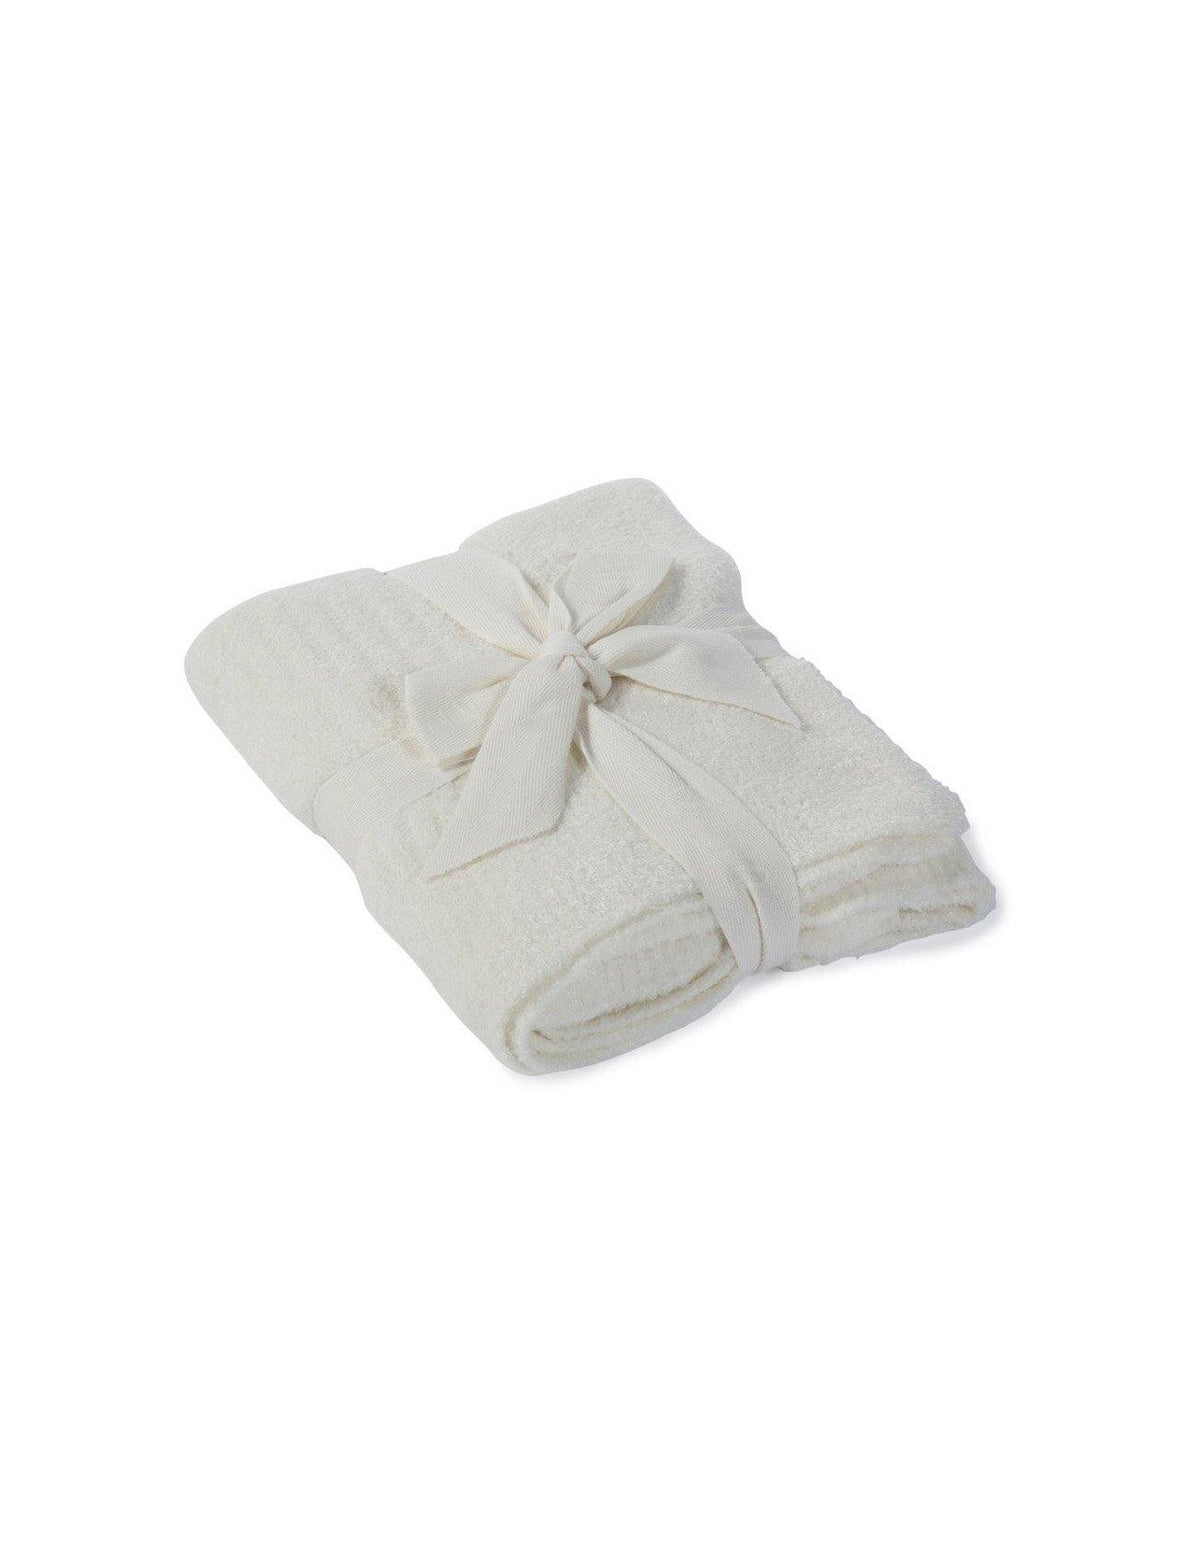 CozyChic Ribbed Infant Blanket - Wheat Boutique